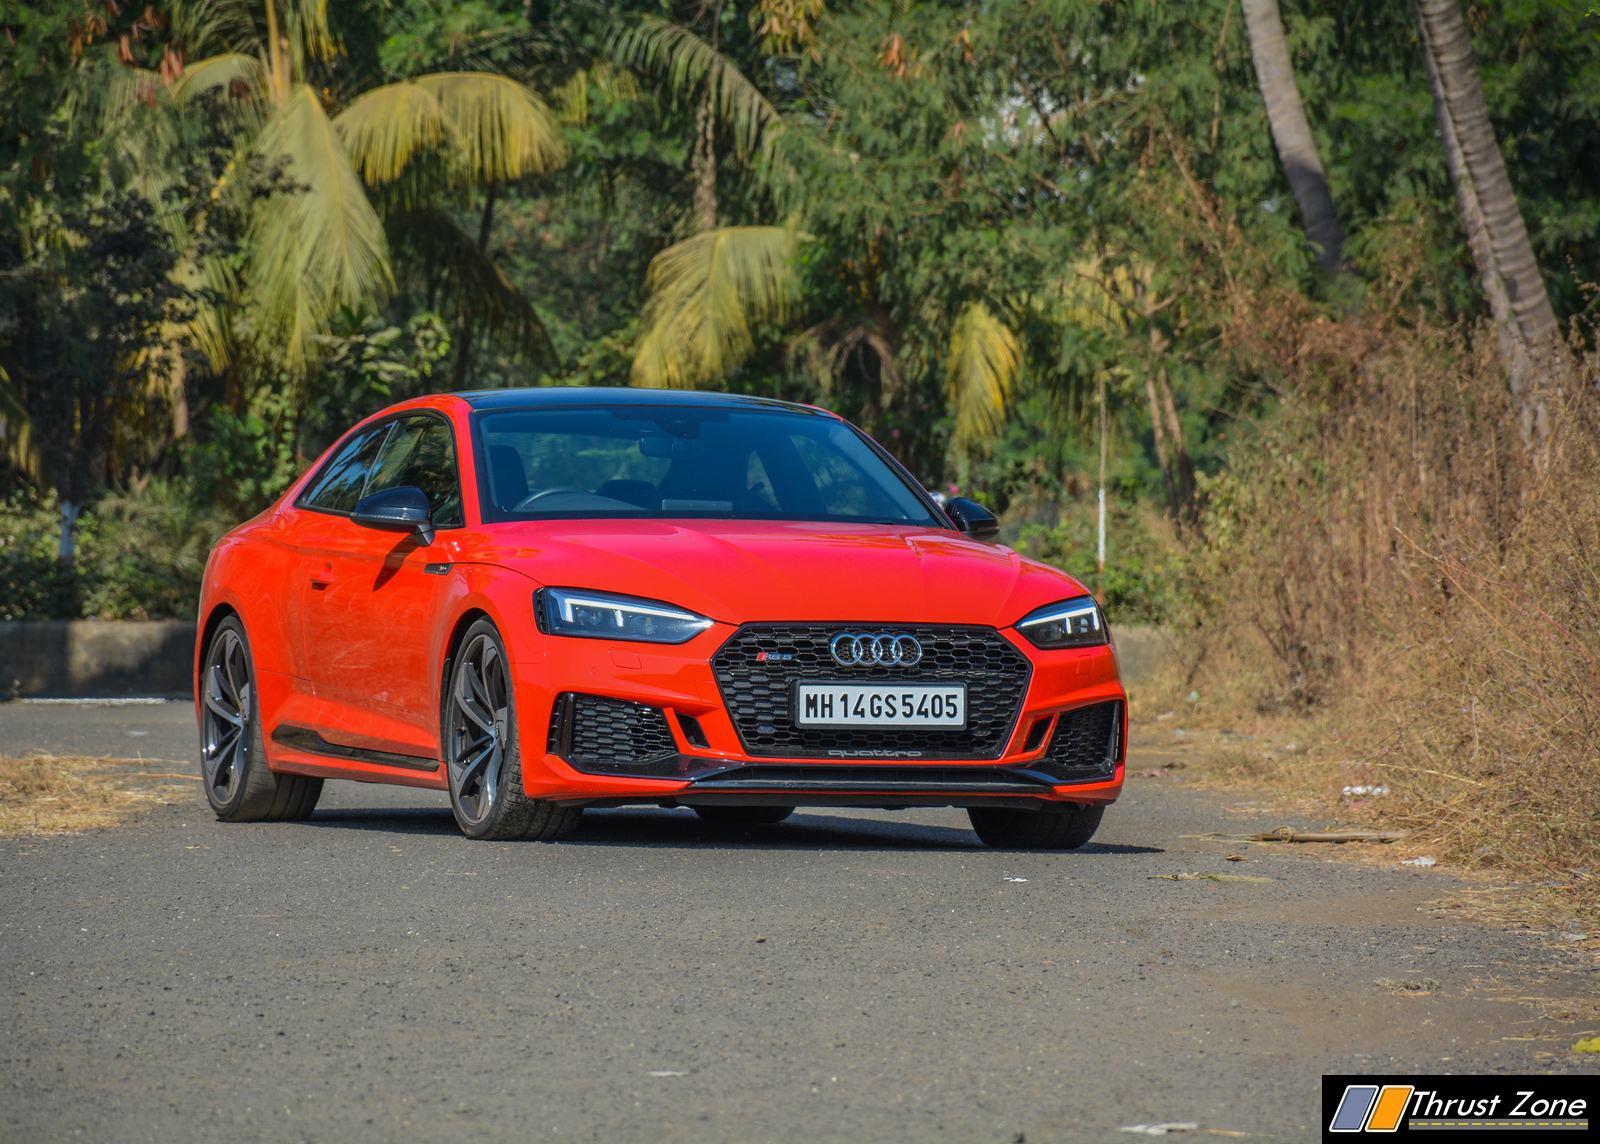 https://www.thrustzone.com/wp-content/uploads/2018/12/2018-Audi-RS5-INDIA-REVIEW-5.jpg